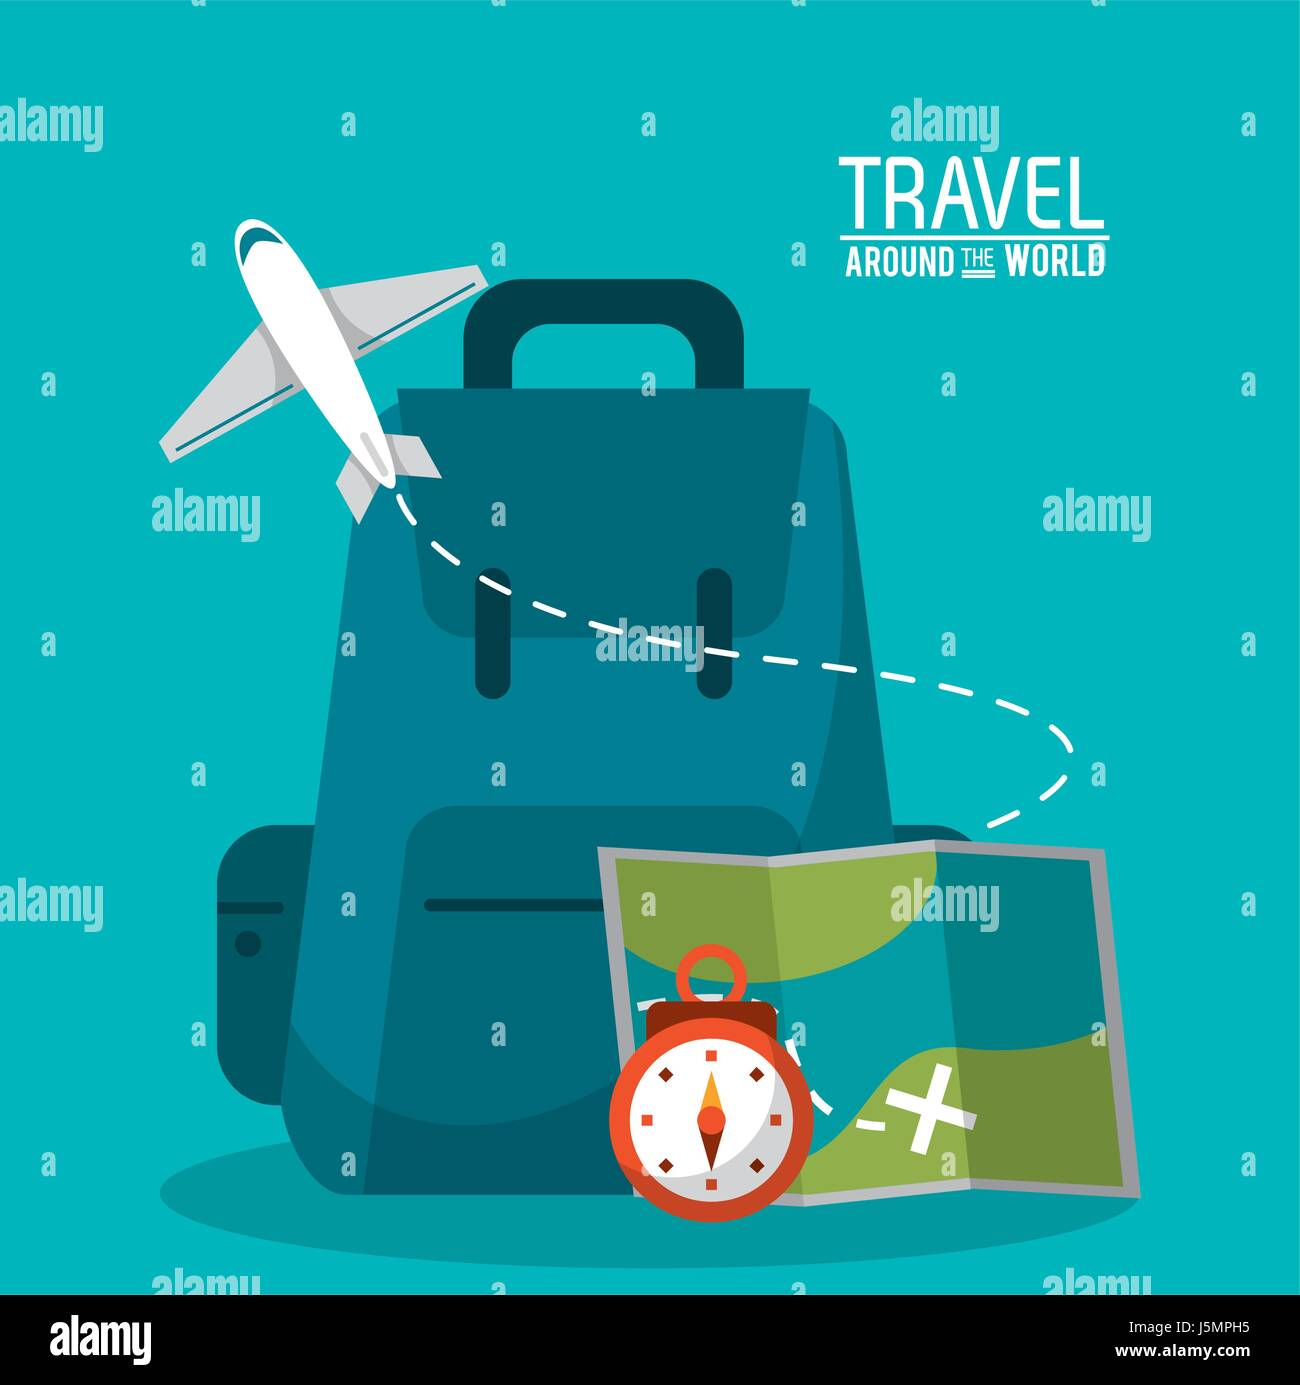 Travel around the world backpack time map plane stock vector art travel around the world backpack time map plane gumiabroncs Image collections